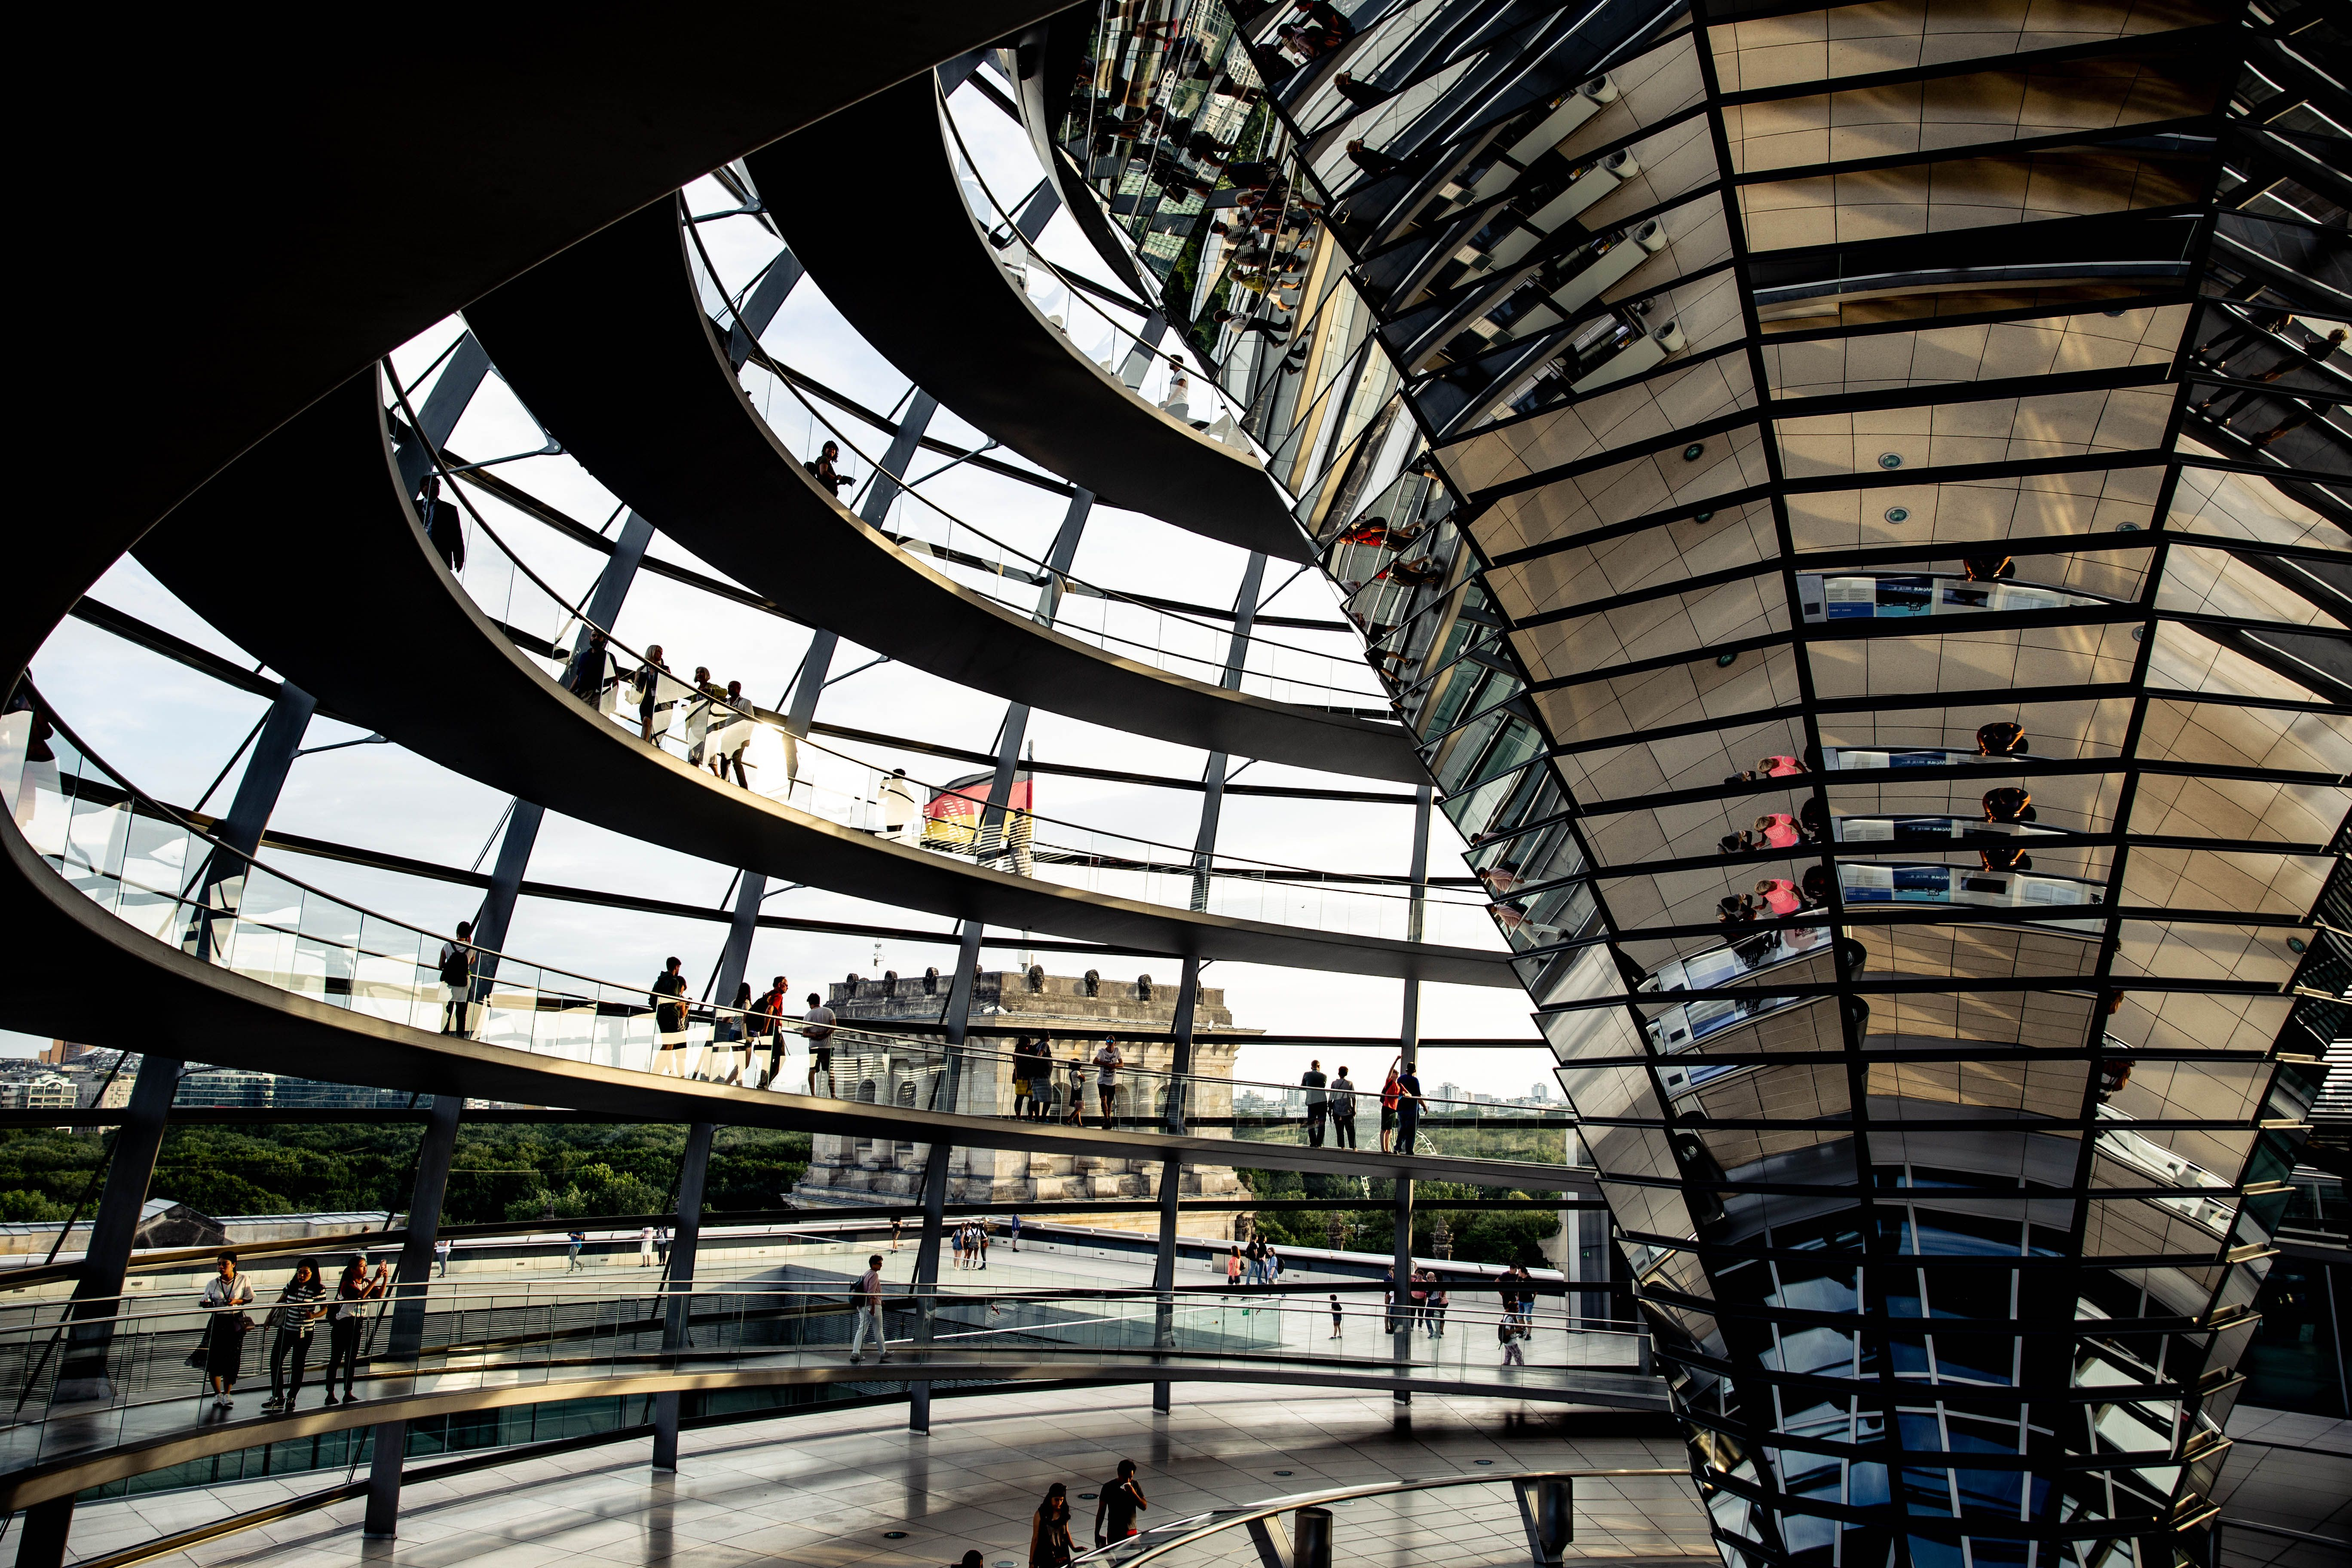 Inside the Reichstag and people walking up the winding stairs